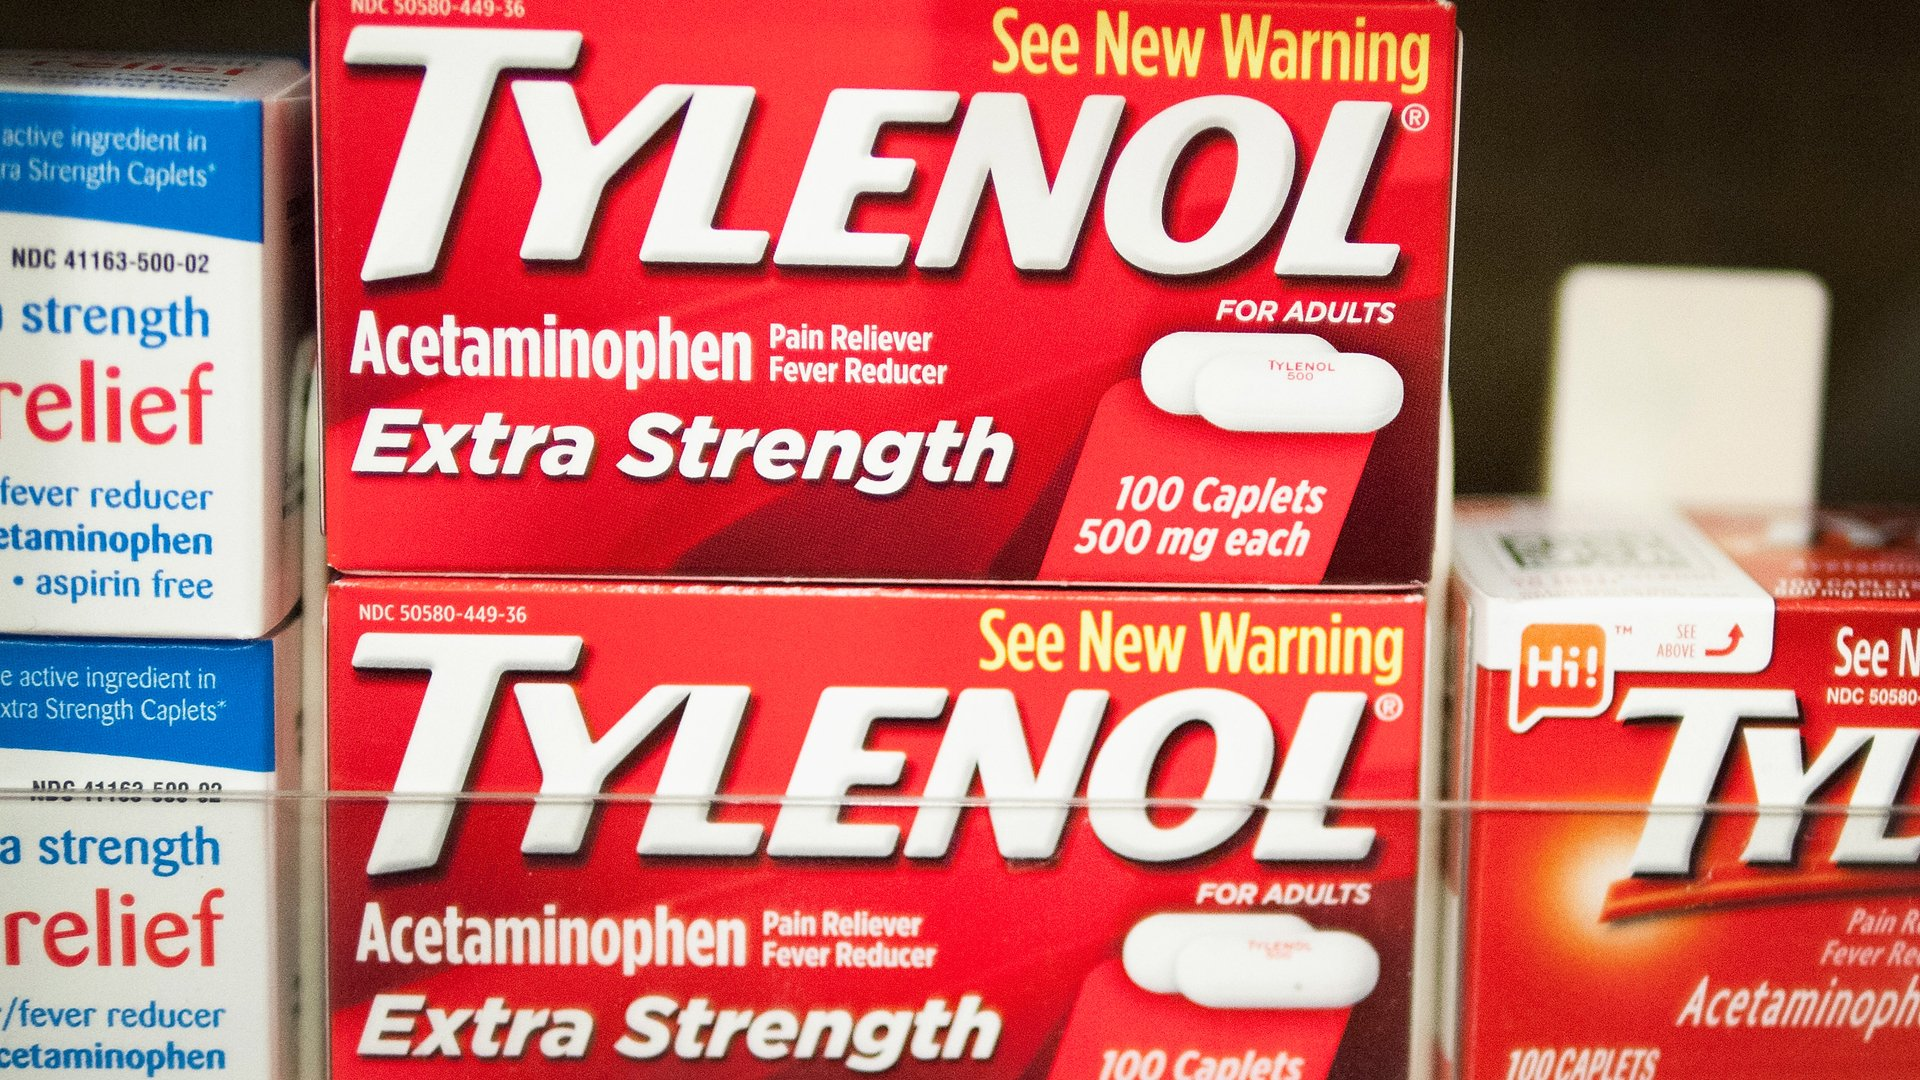 Tylenol, which contains acetaminophen, is offered for sale at a drug store on April 14, 2015, in Chicago. (Credit: Scott Olson/Getty Images)